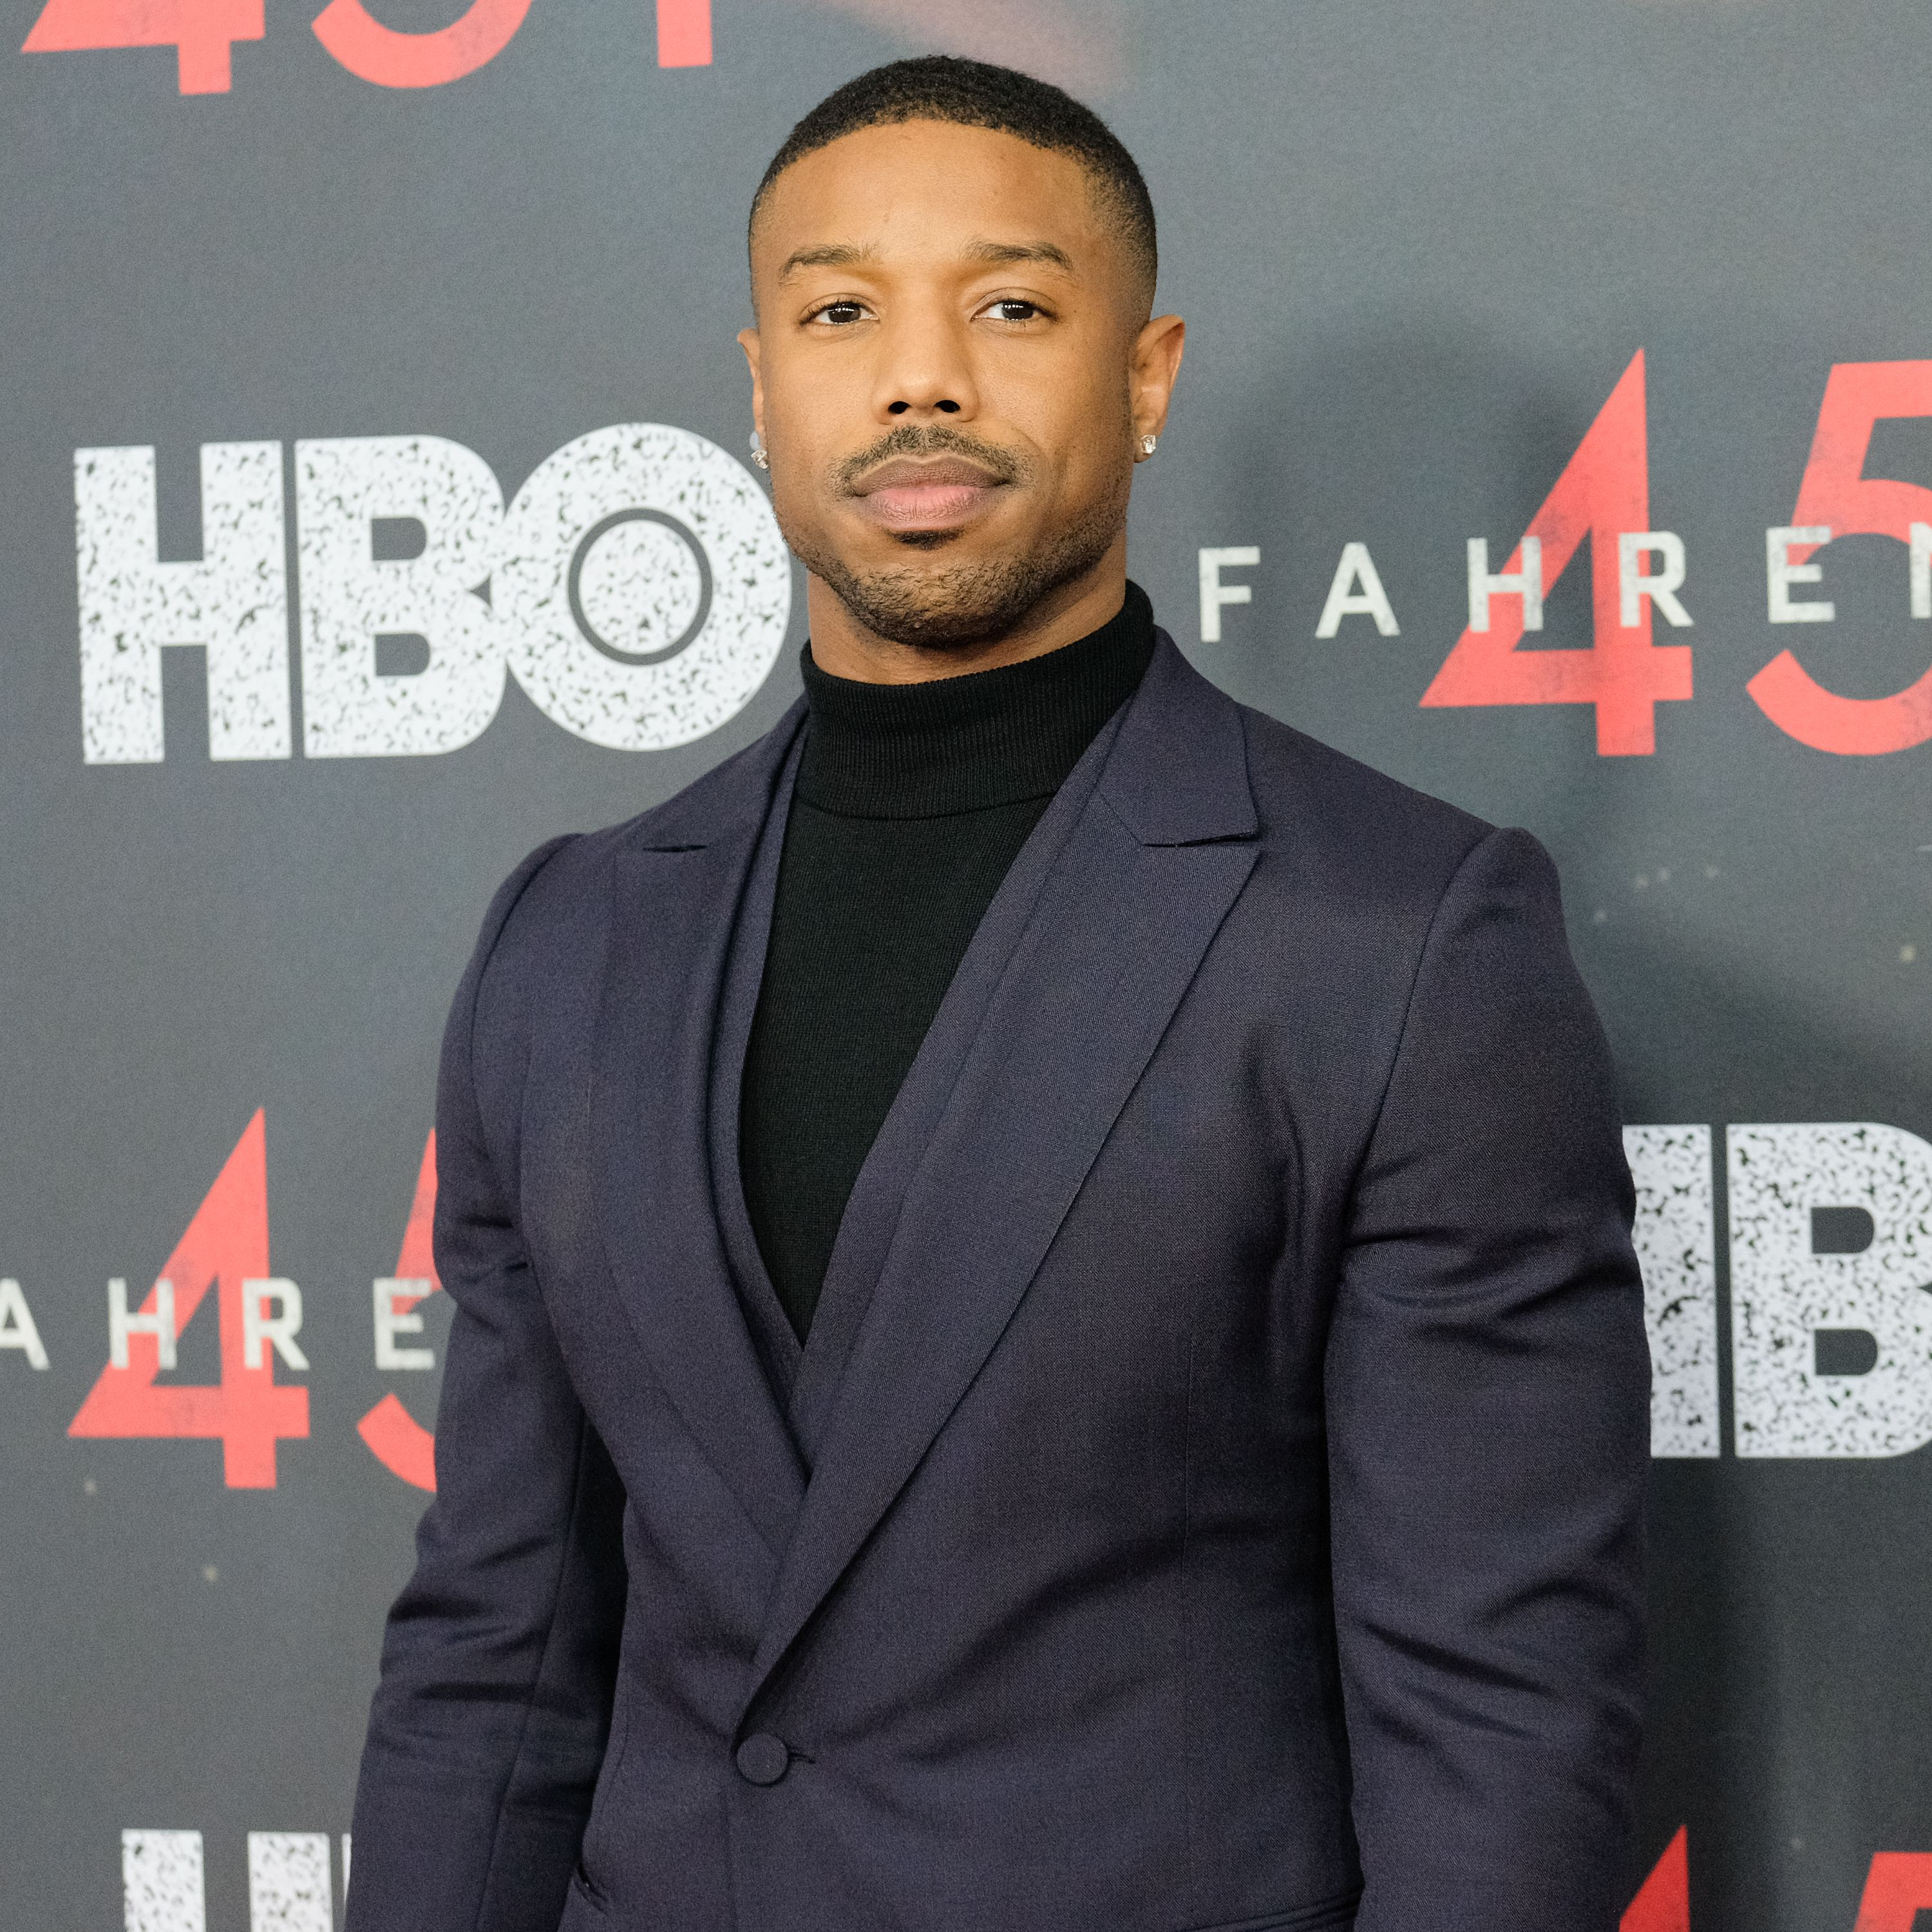 """Michael B. Jordan at the """"Fahrenheit 451"""" New York premiere at NYU Skirball Center on May 8, 2018. 